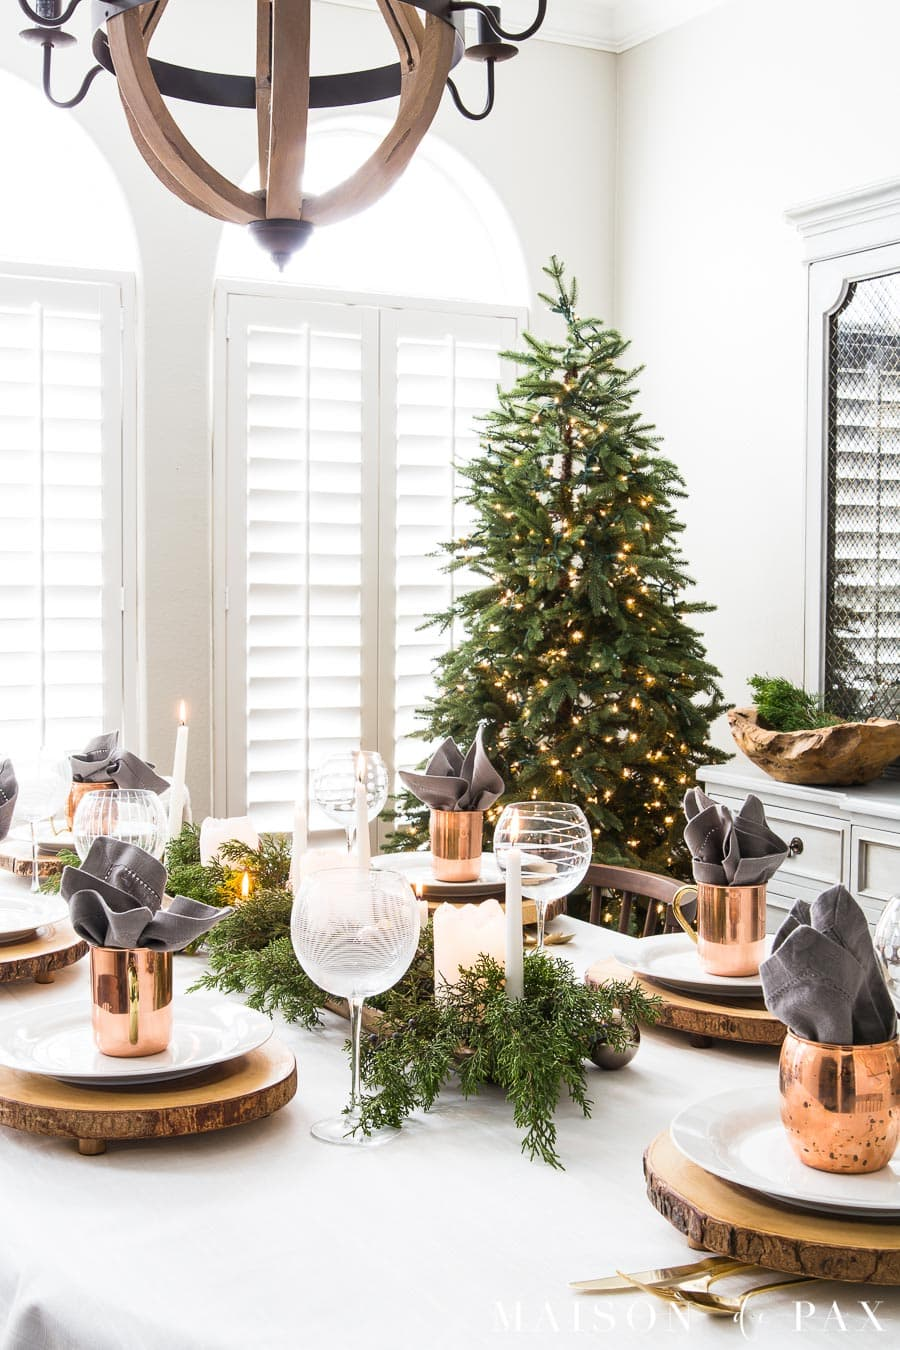 this is a white christmas tablescape with wooden place settings